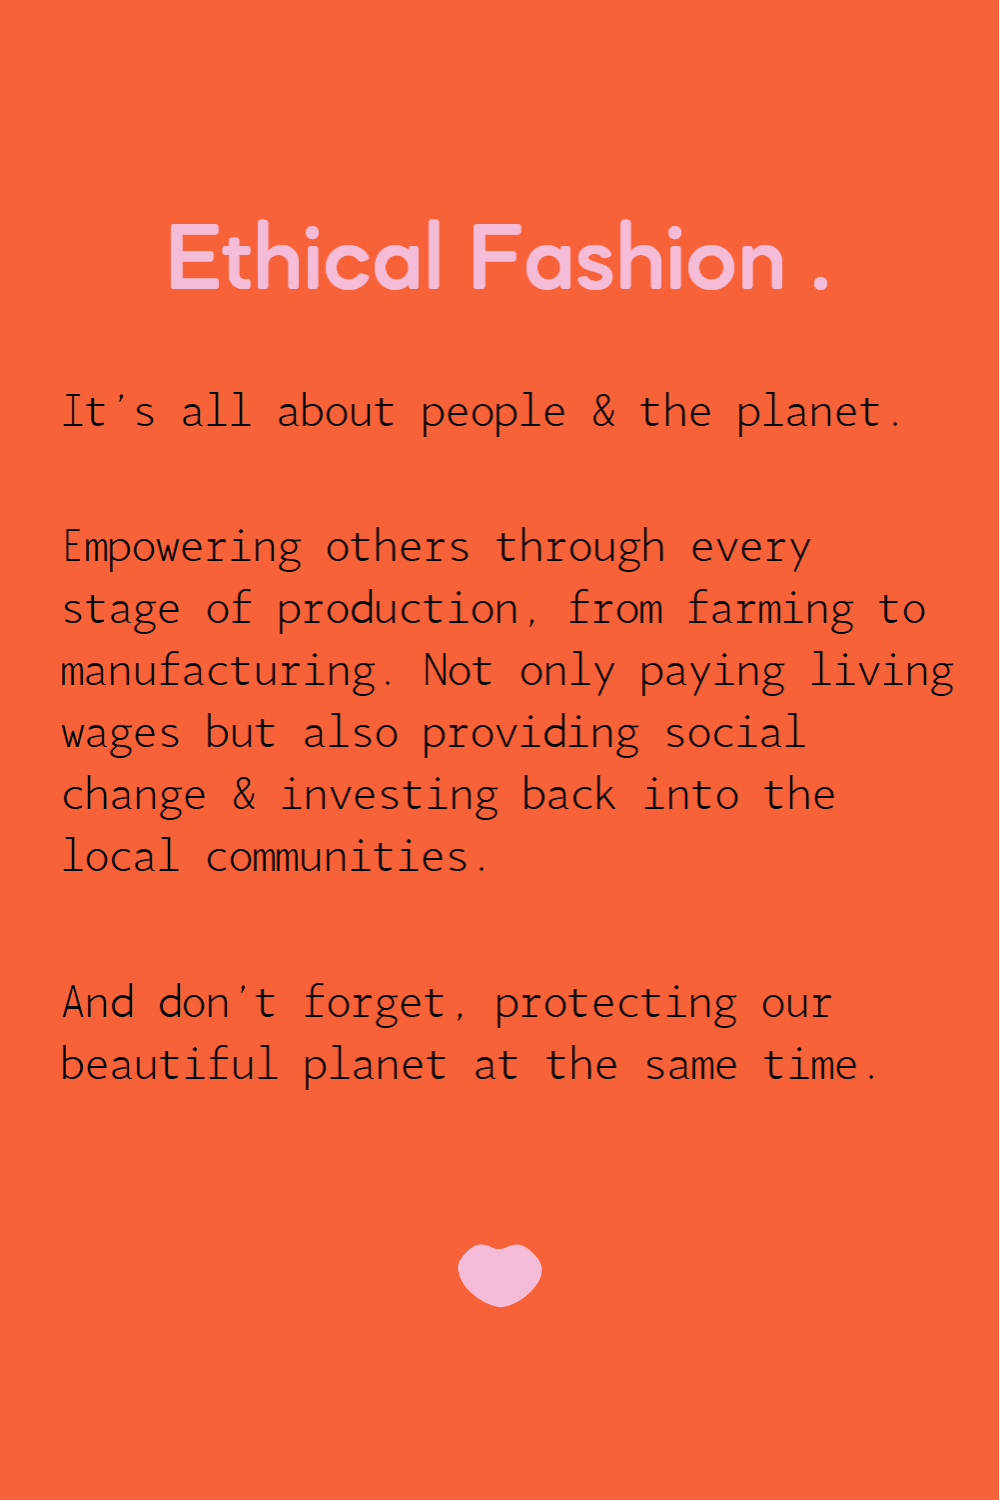 Ethical Fashion Definition